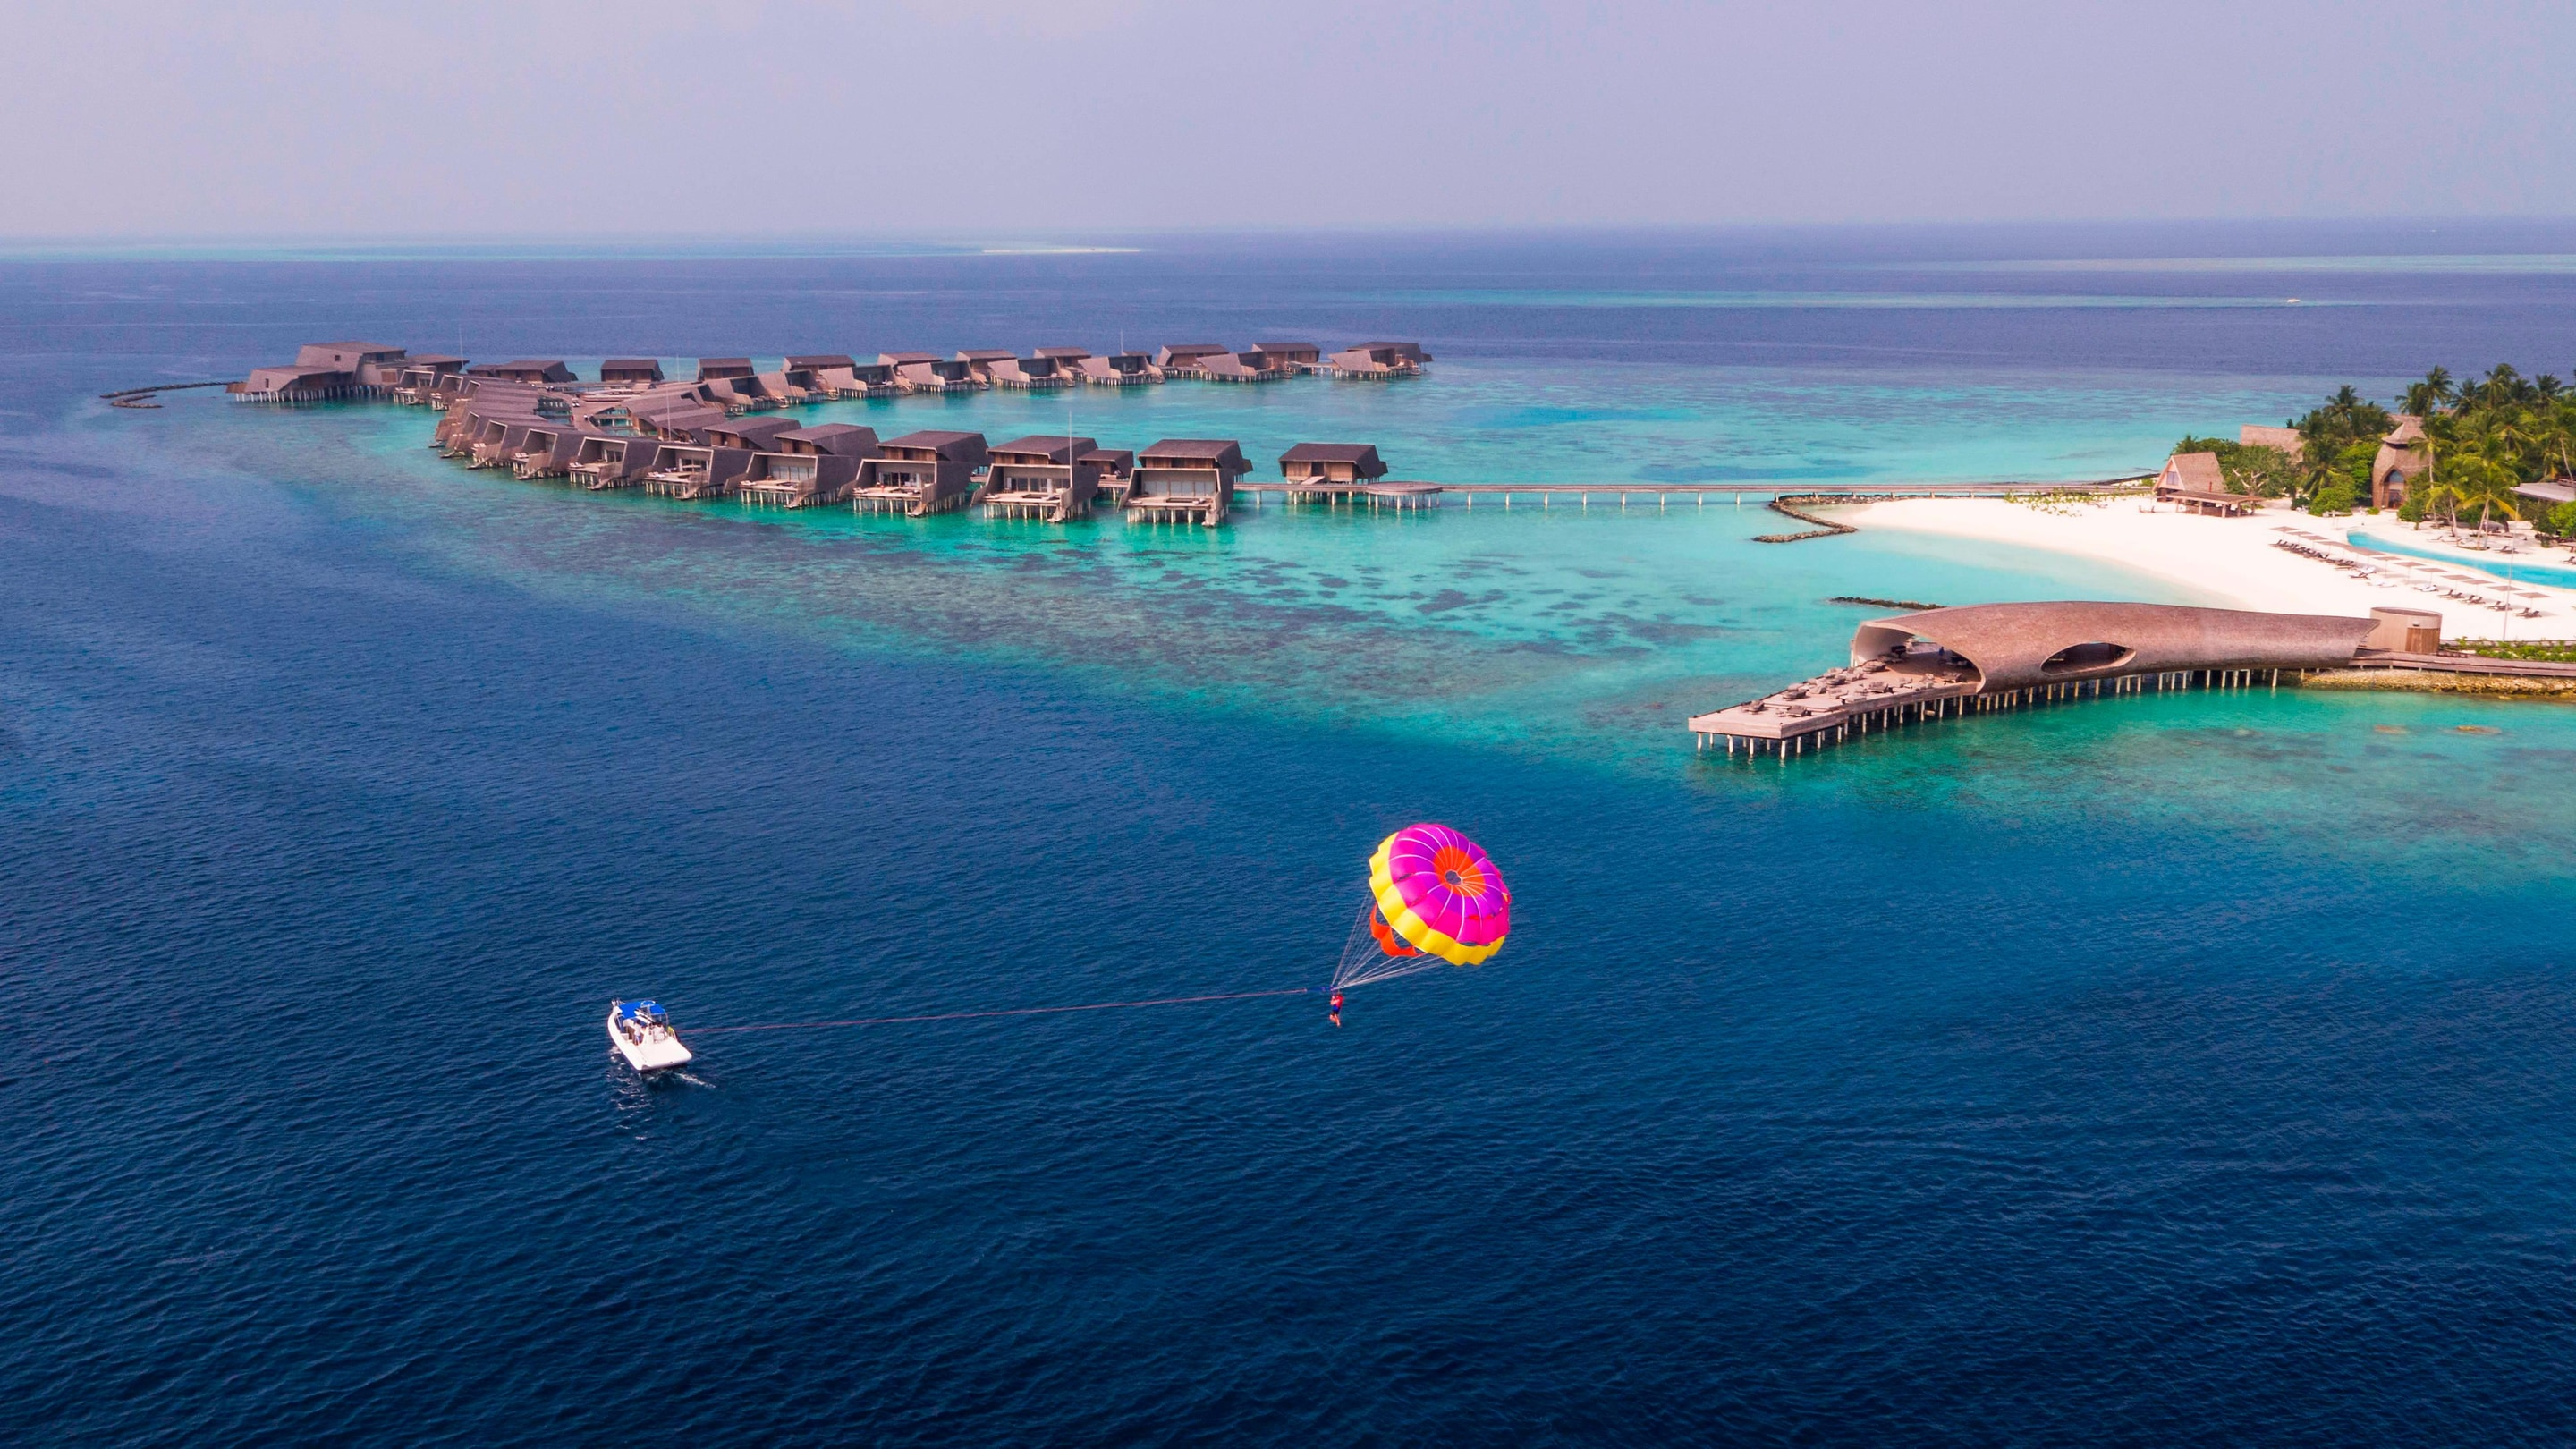 Parasailing by the villas